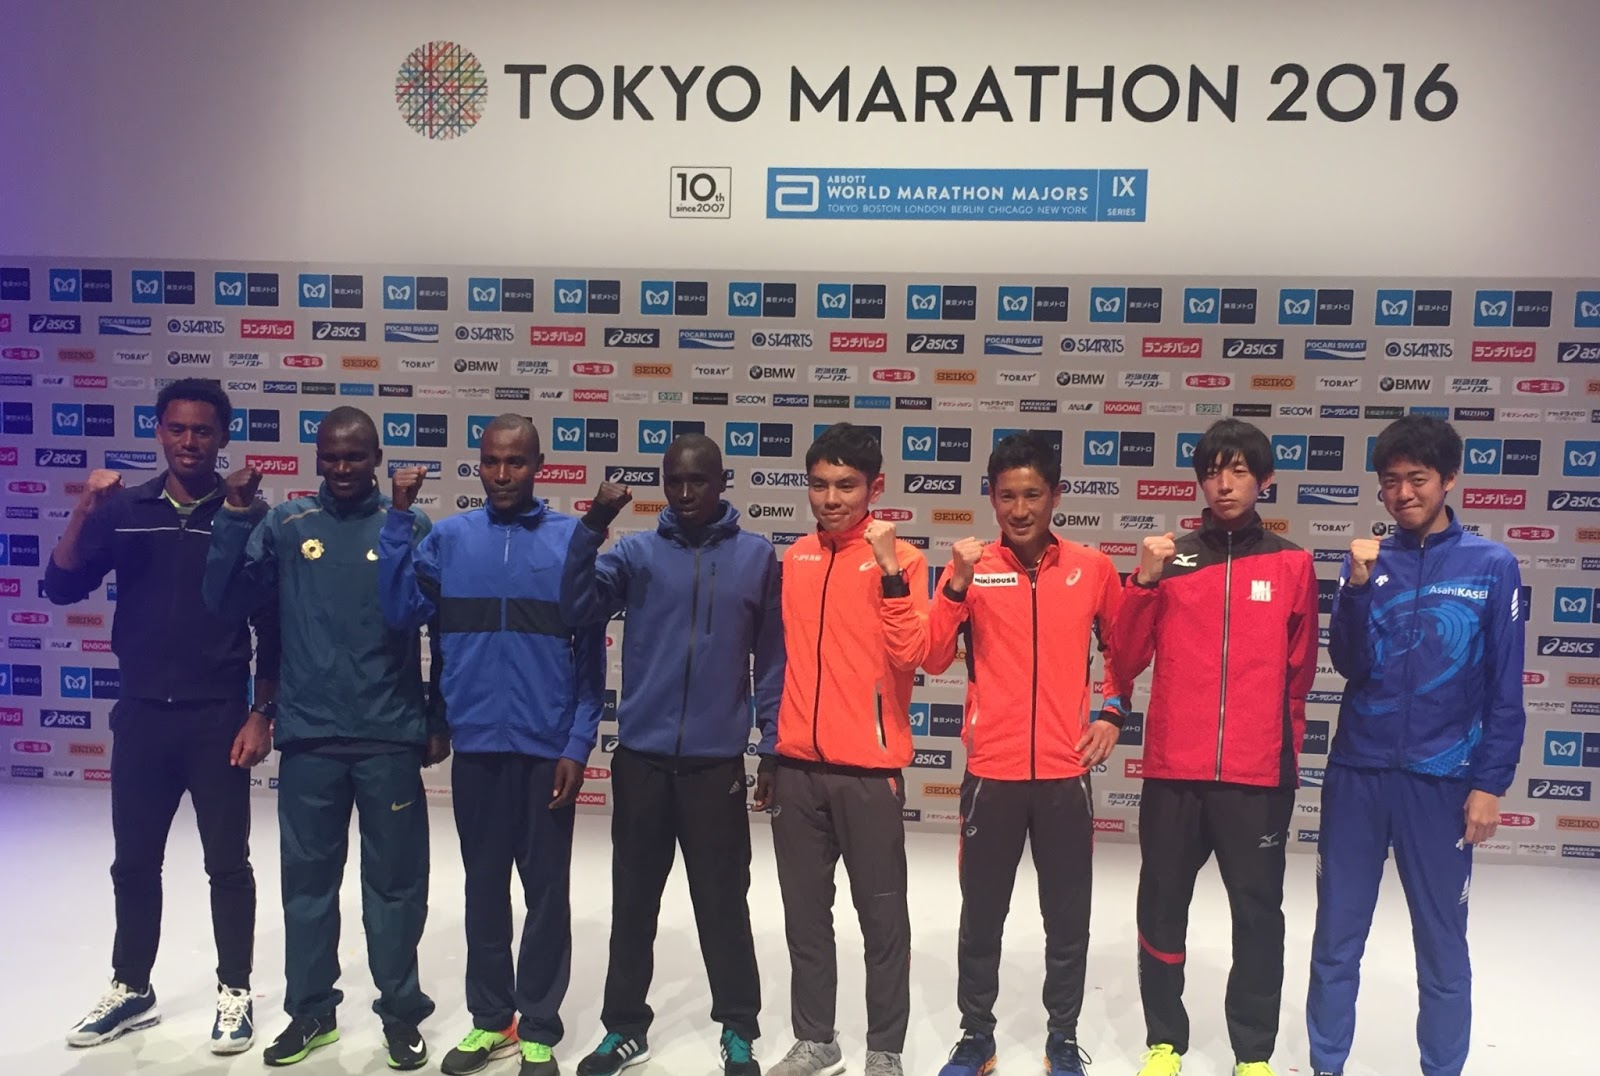 tokumoto kasumi In its tenth edition as a mass-participation race Sunday's Tokyo Marathon  comes packed with story lines. With the weather forecast looking good both  the ...